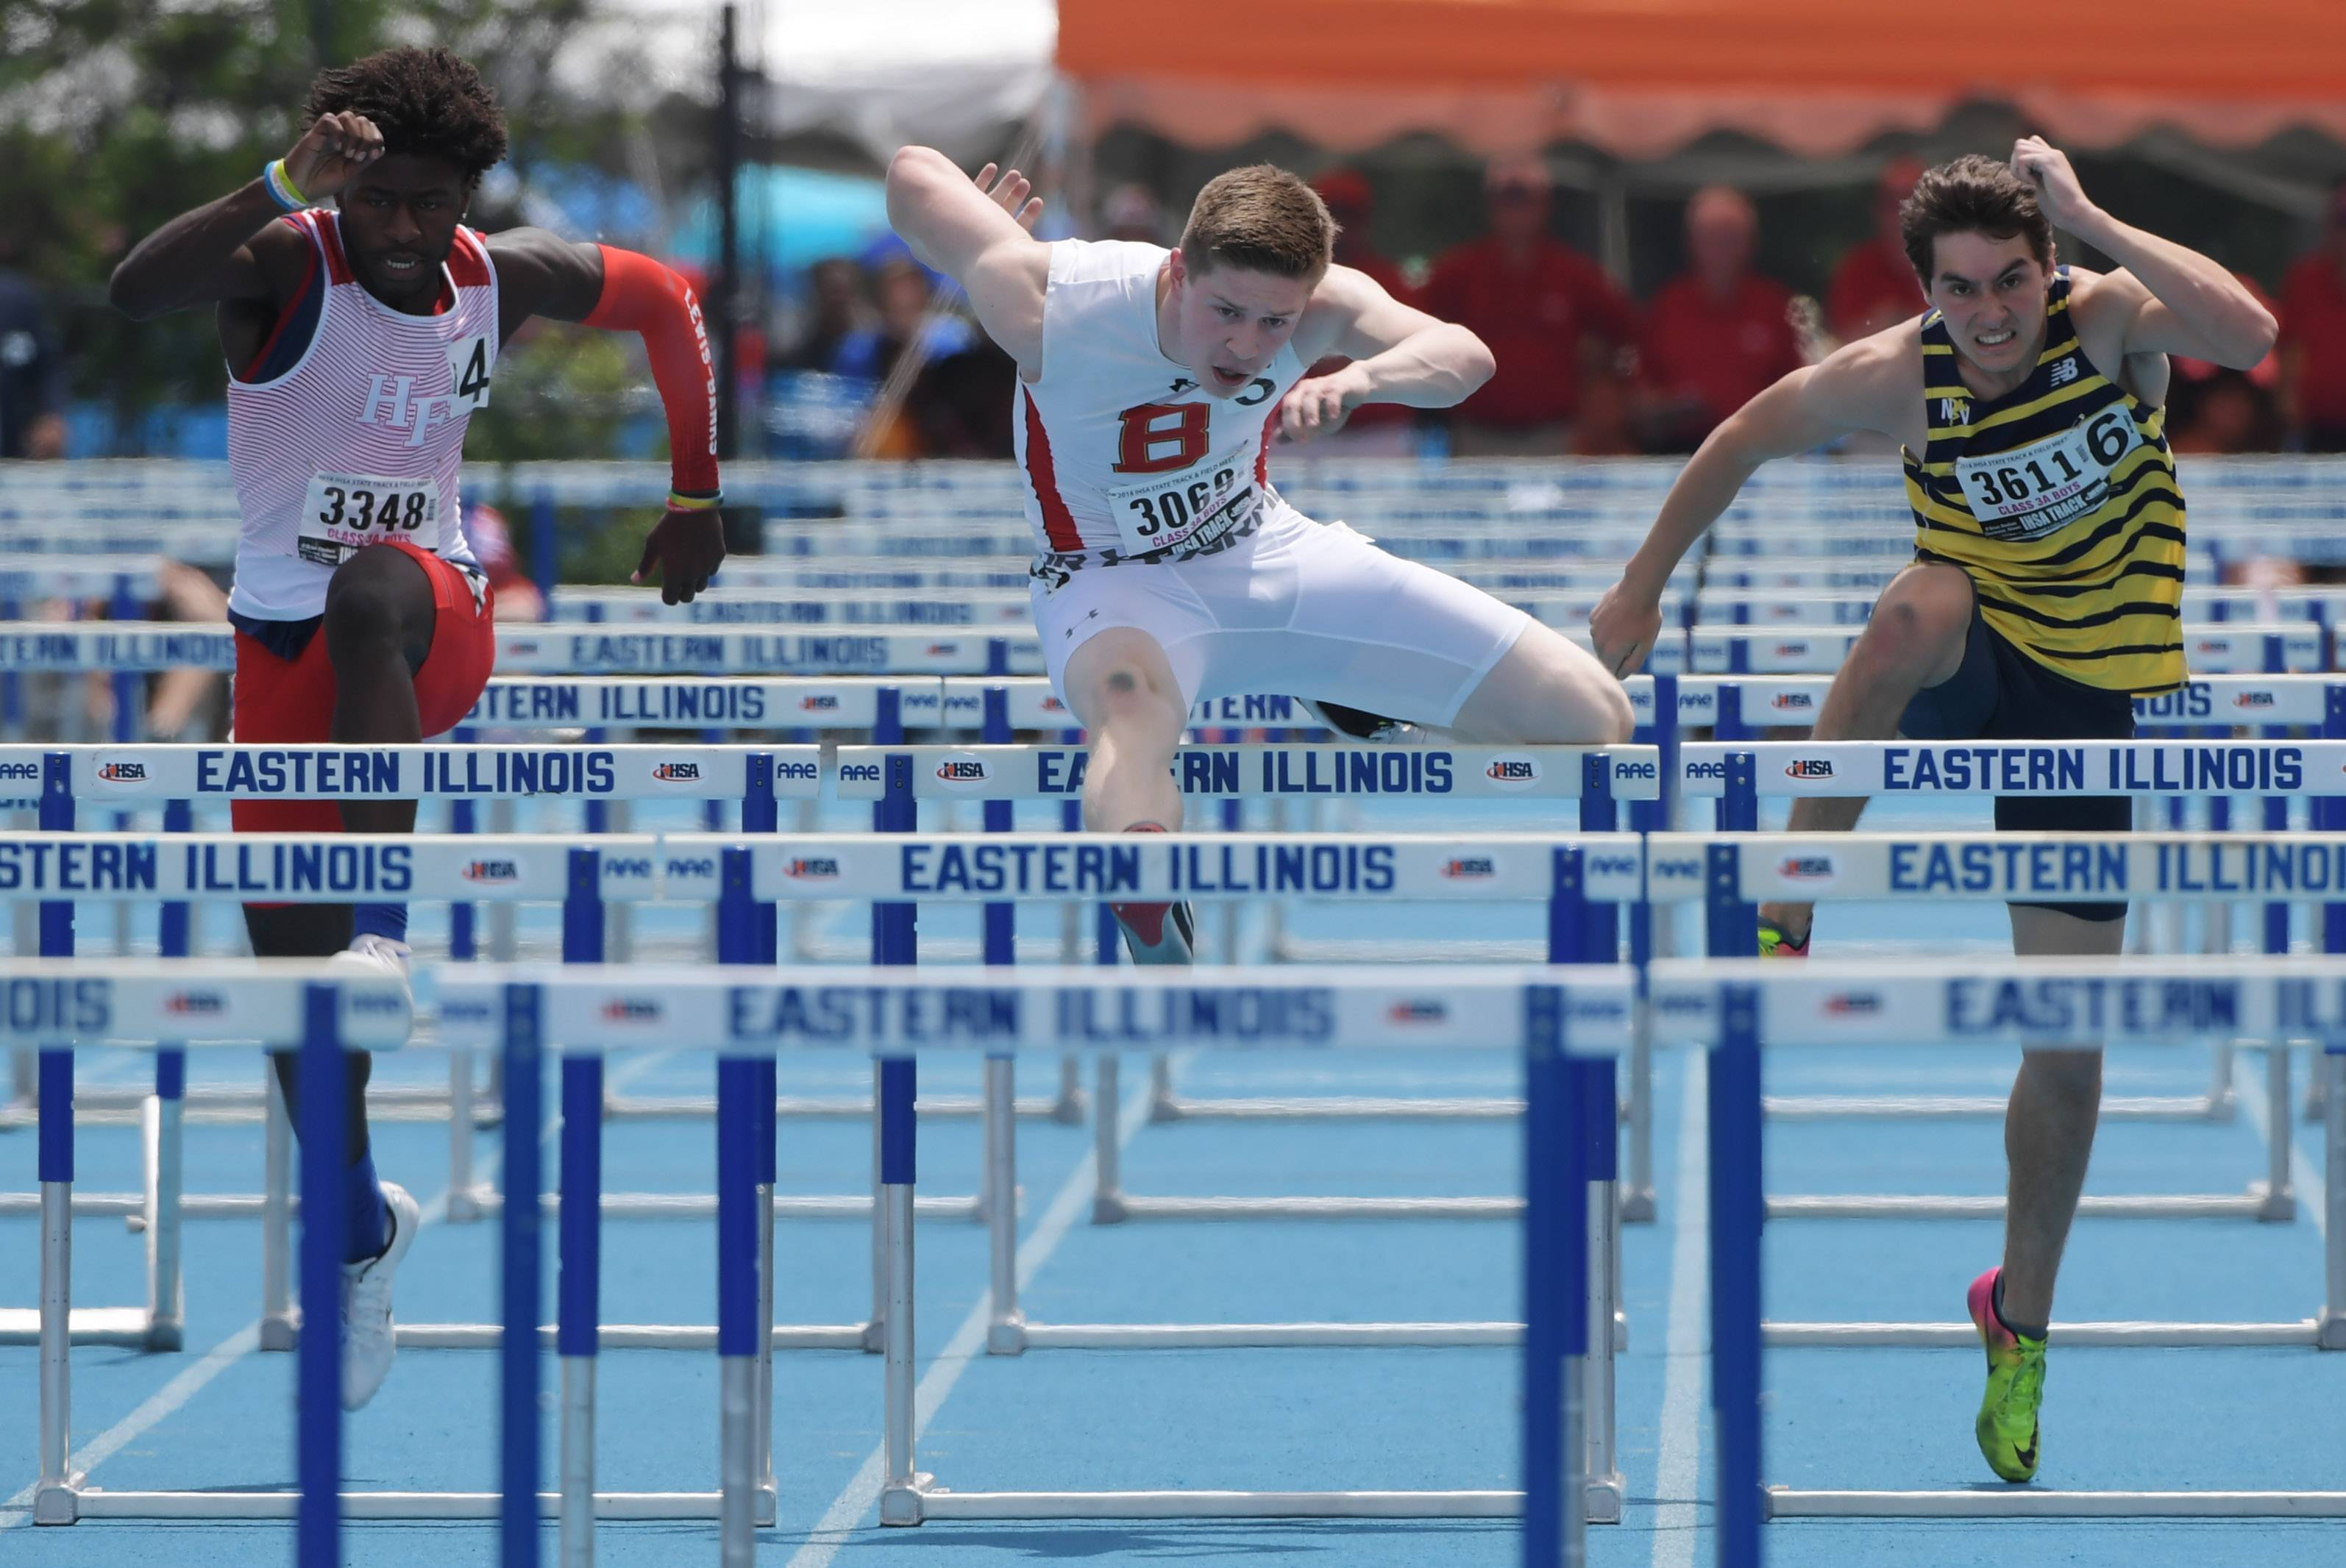 Batavia's Sam Conger, middle, and Neuqua Valley's Donovan Turner, right, head for the finish line in the 110-mewter high hurdles during the Class 3A boys state track and field finals in Charleston Saturday.